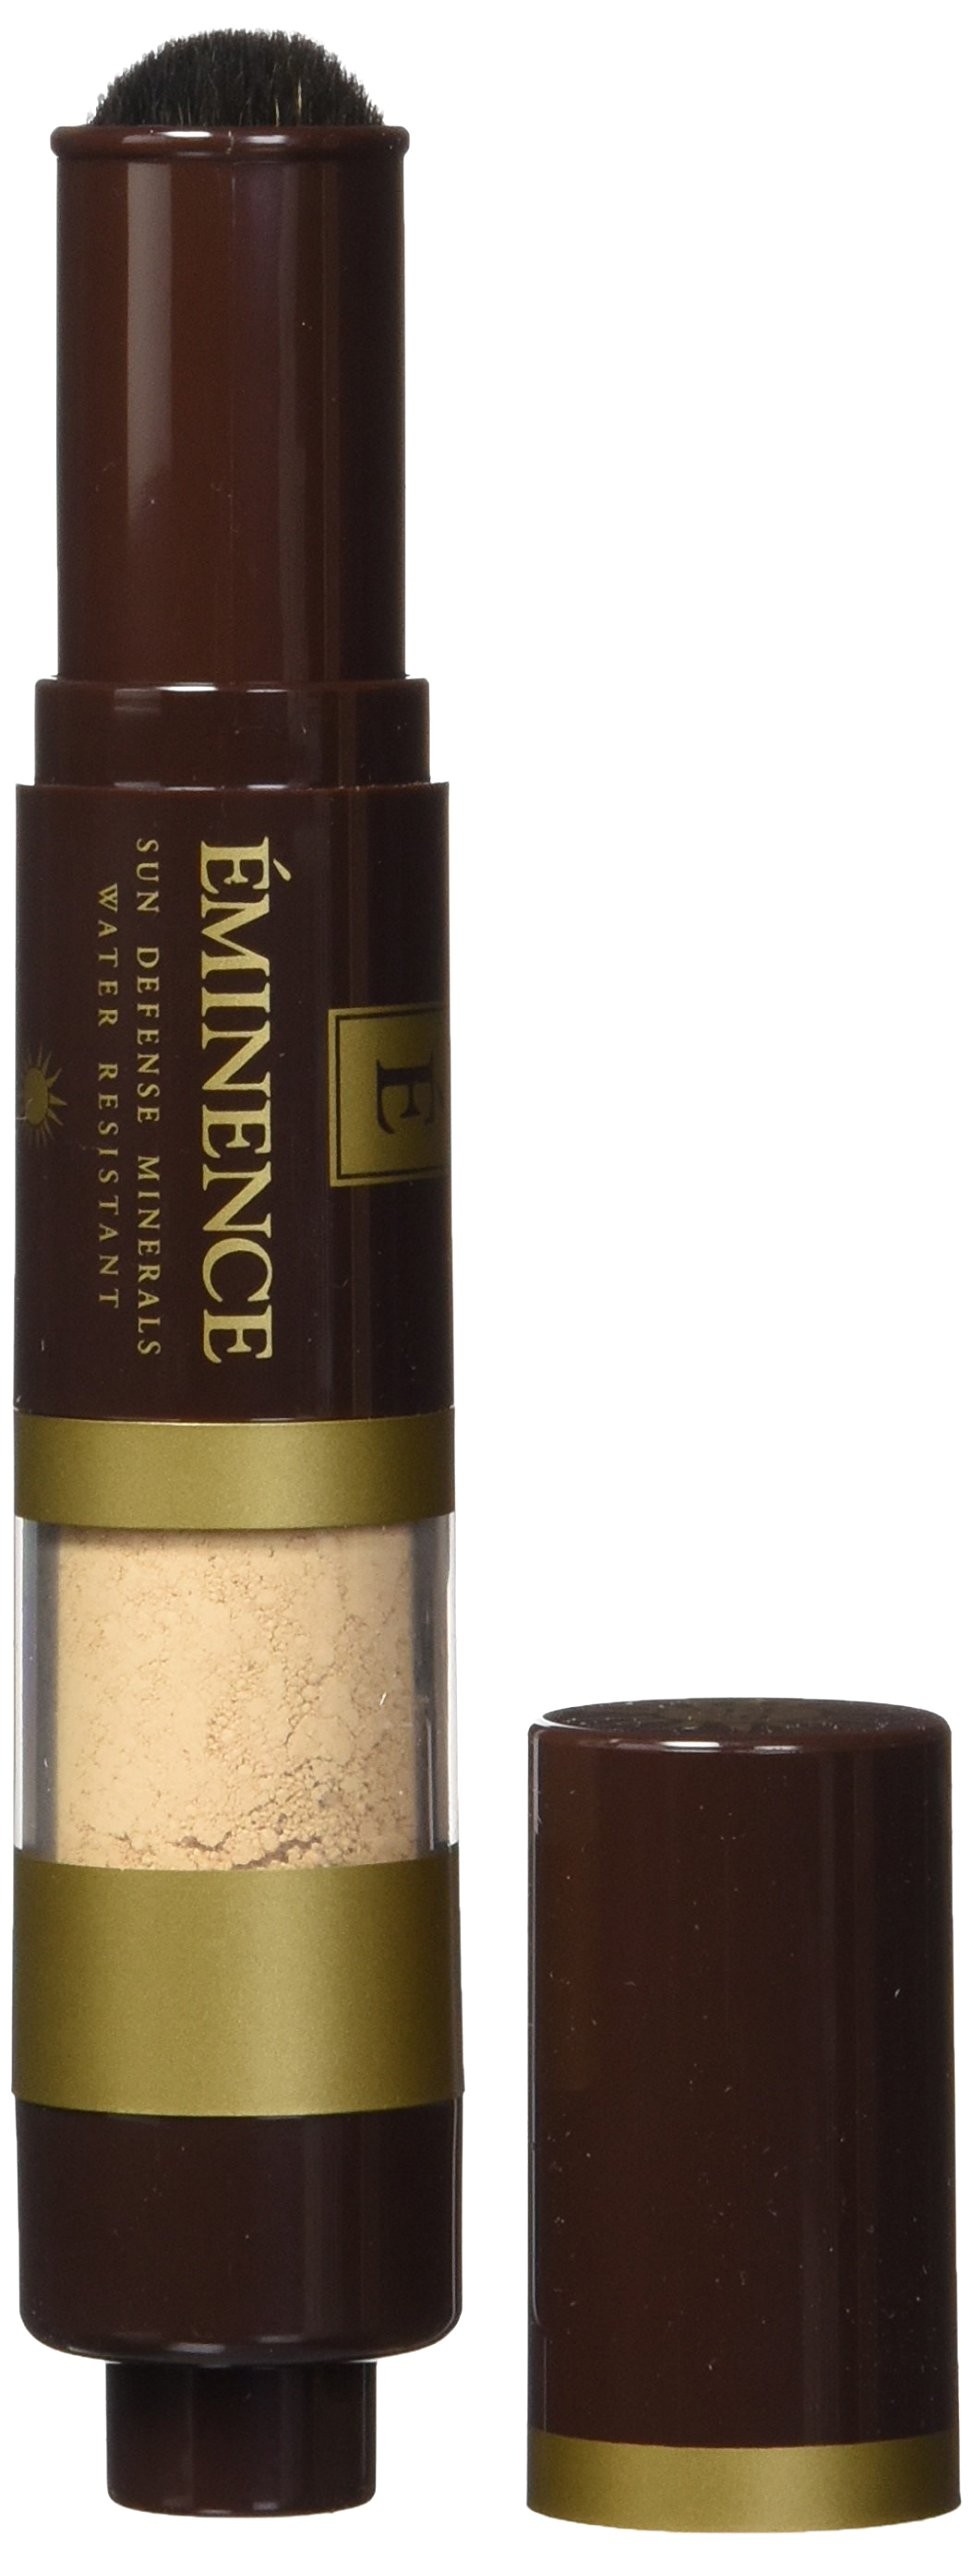 Eminence Sun Defense Minerals SPF30, 1 Honey Apple, 8 Gram